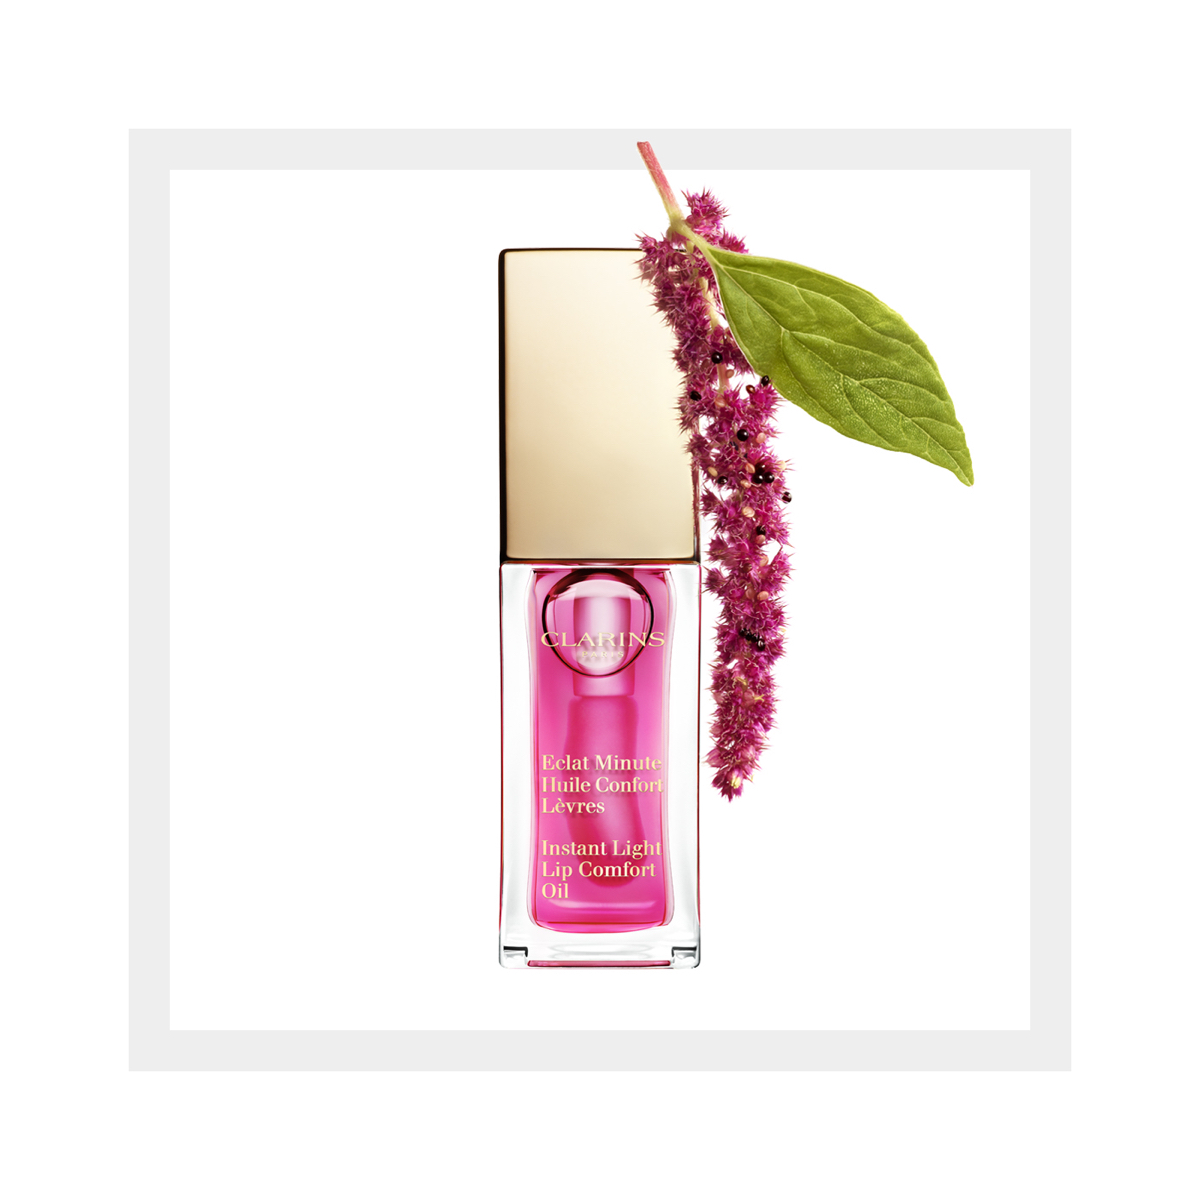 Instant-Light-Lip-Comfort-Oil-Candy-C050303007